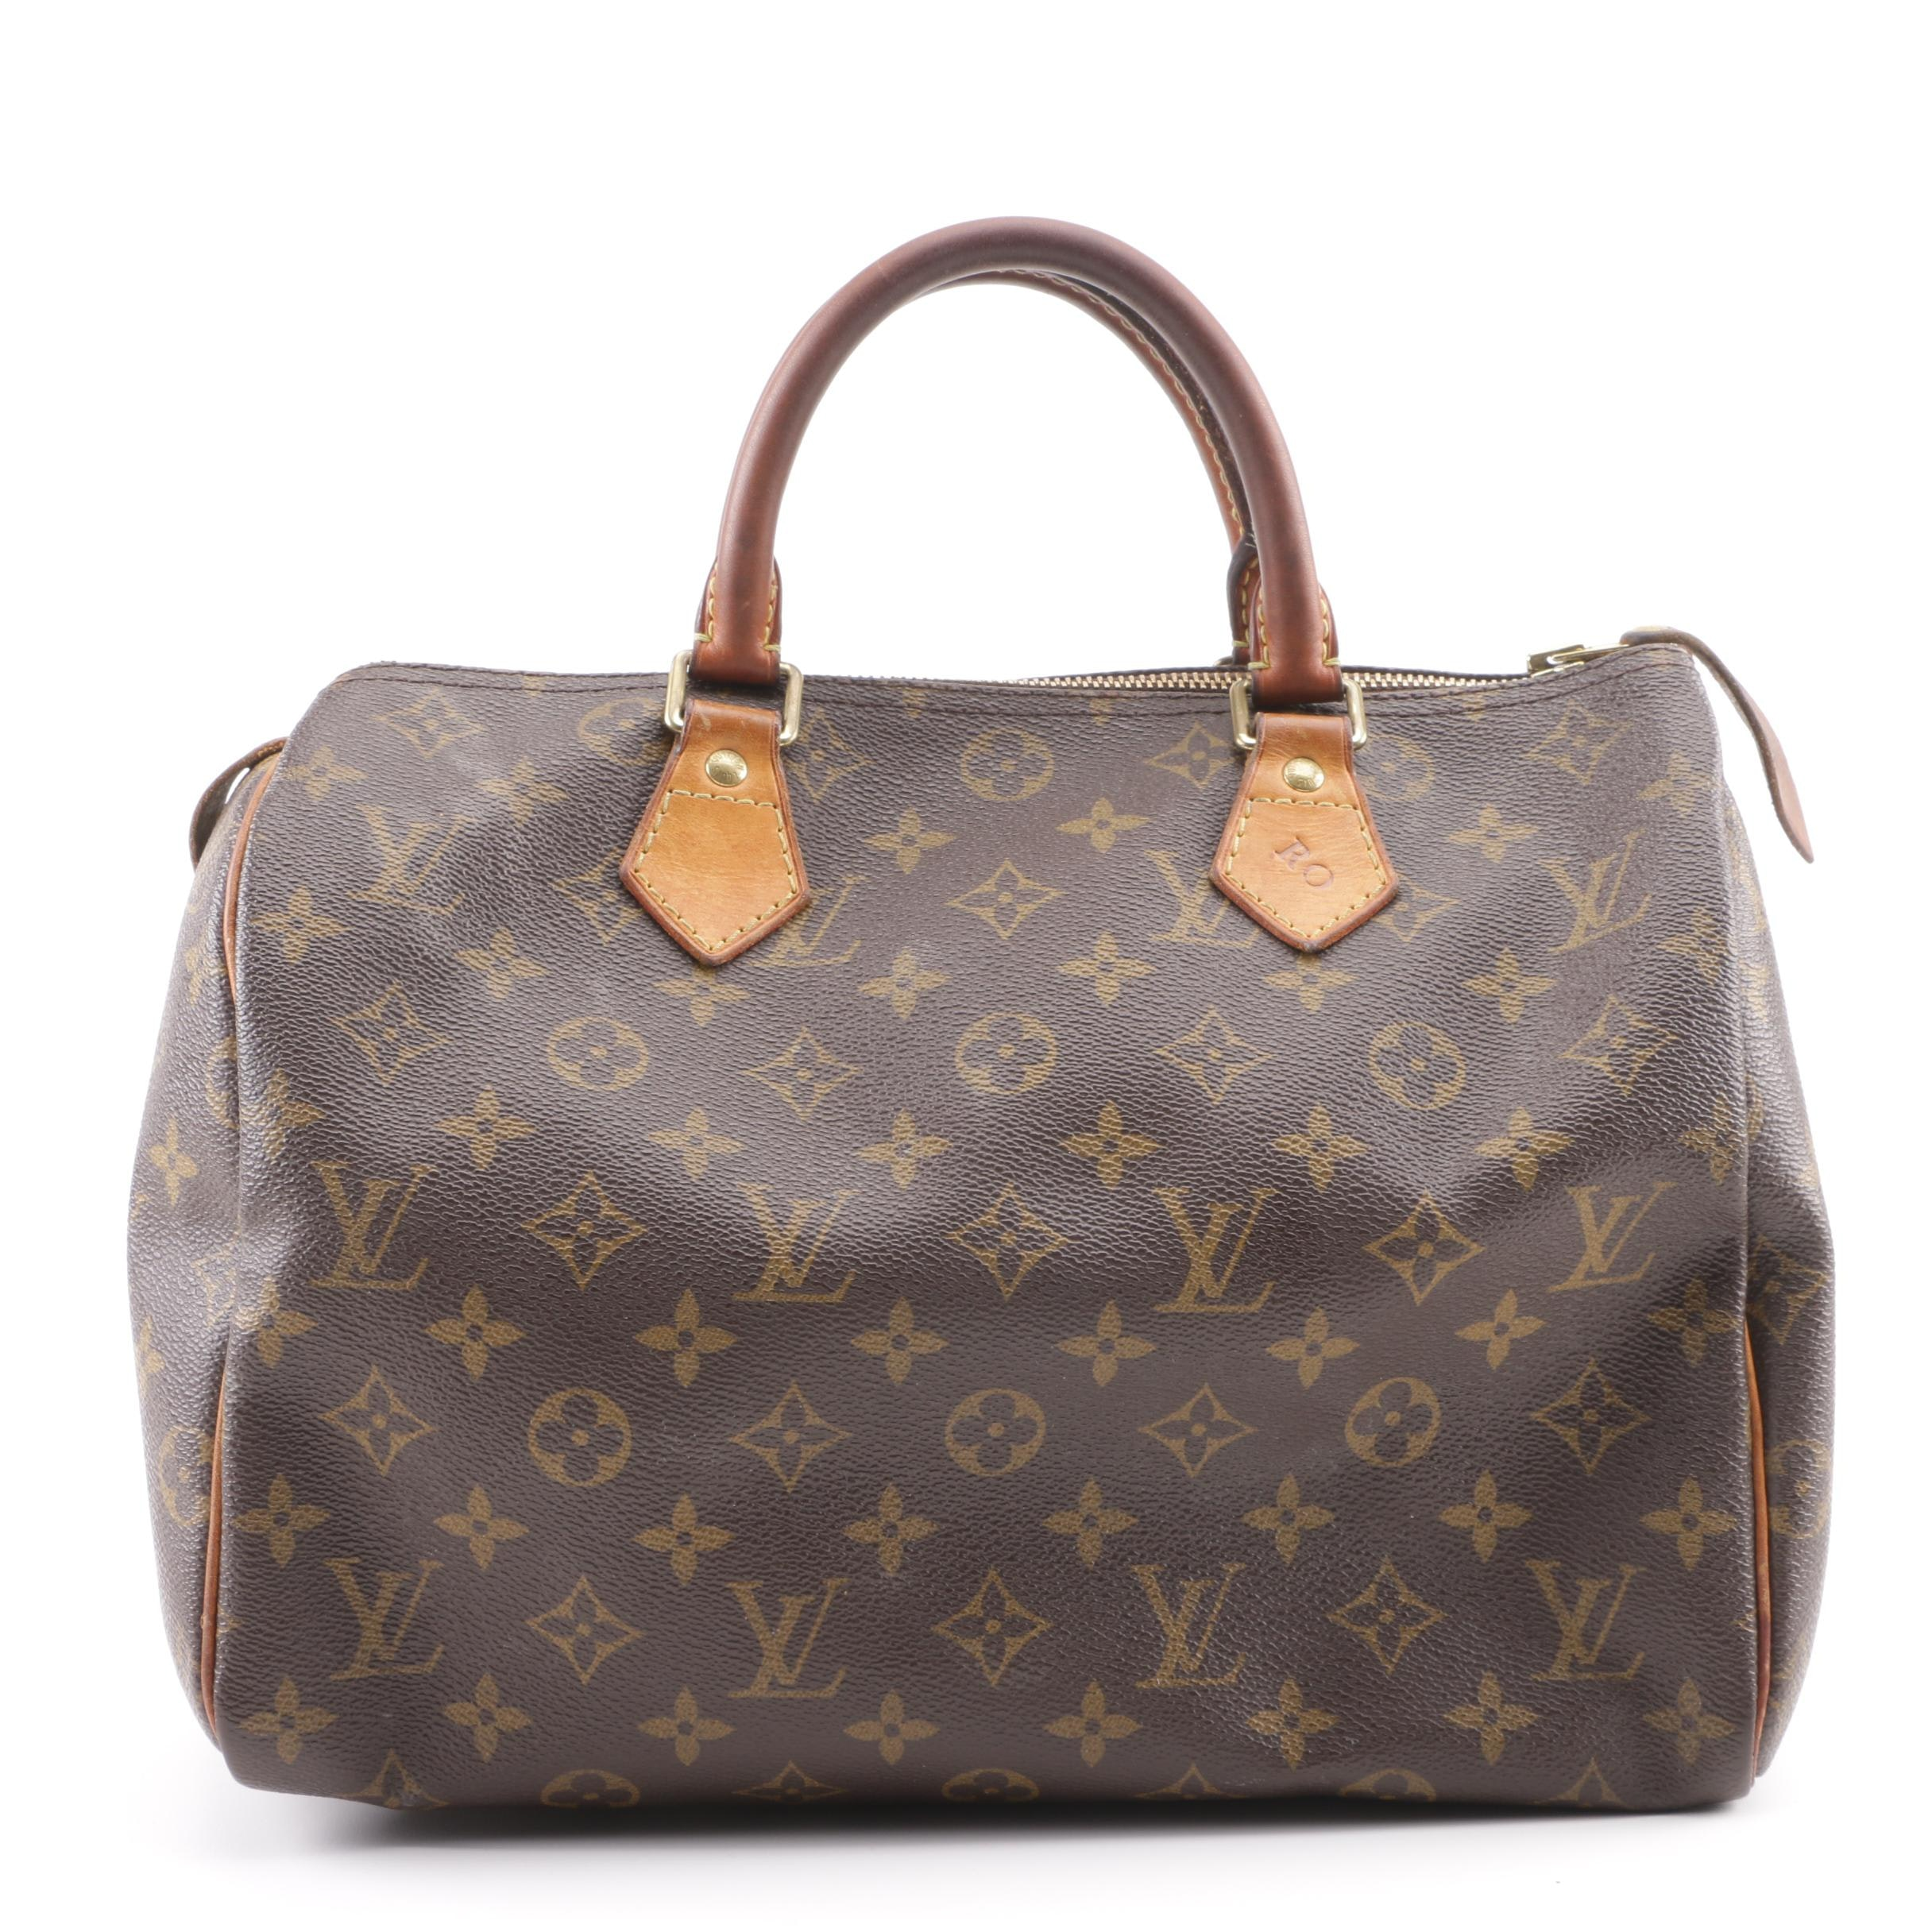 2010 Louis Vuitton Paris Monogram Canvas Speedy Bag